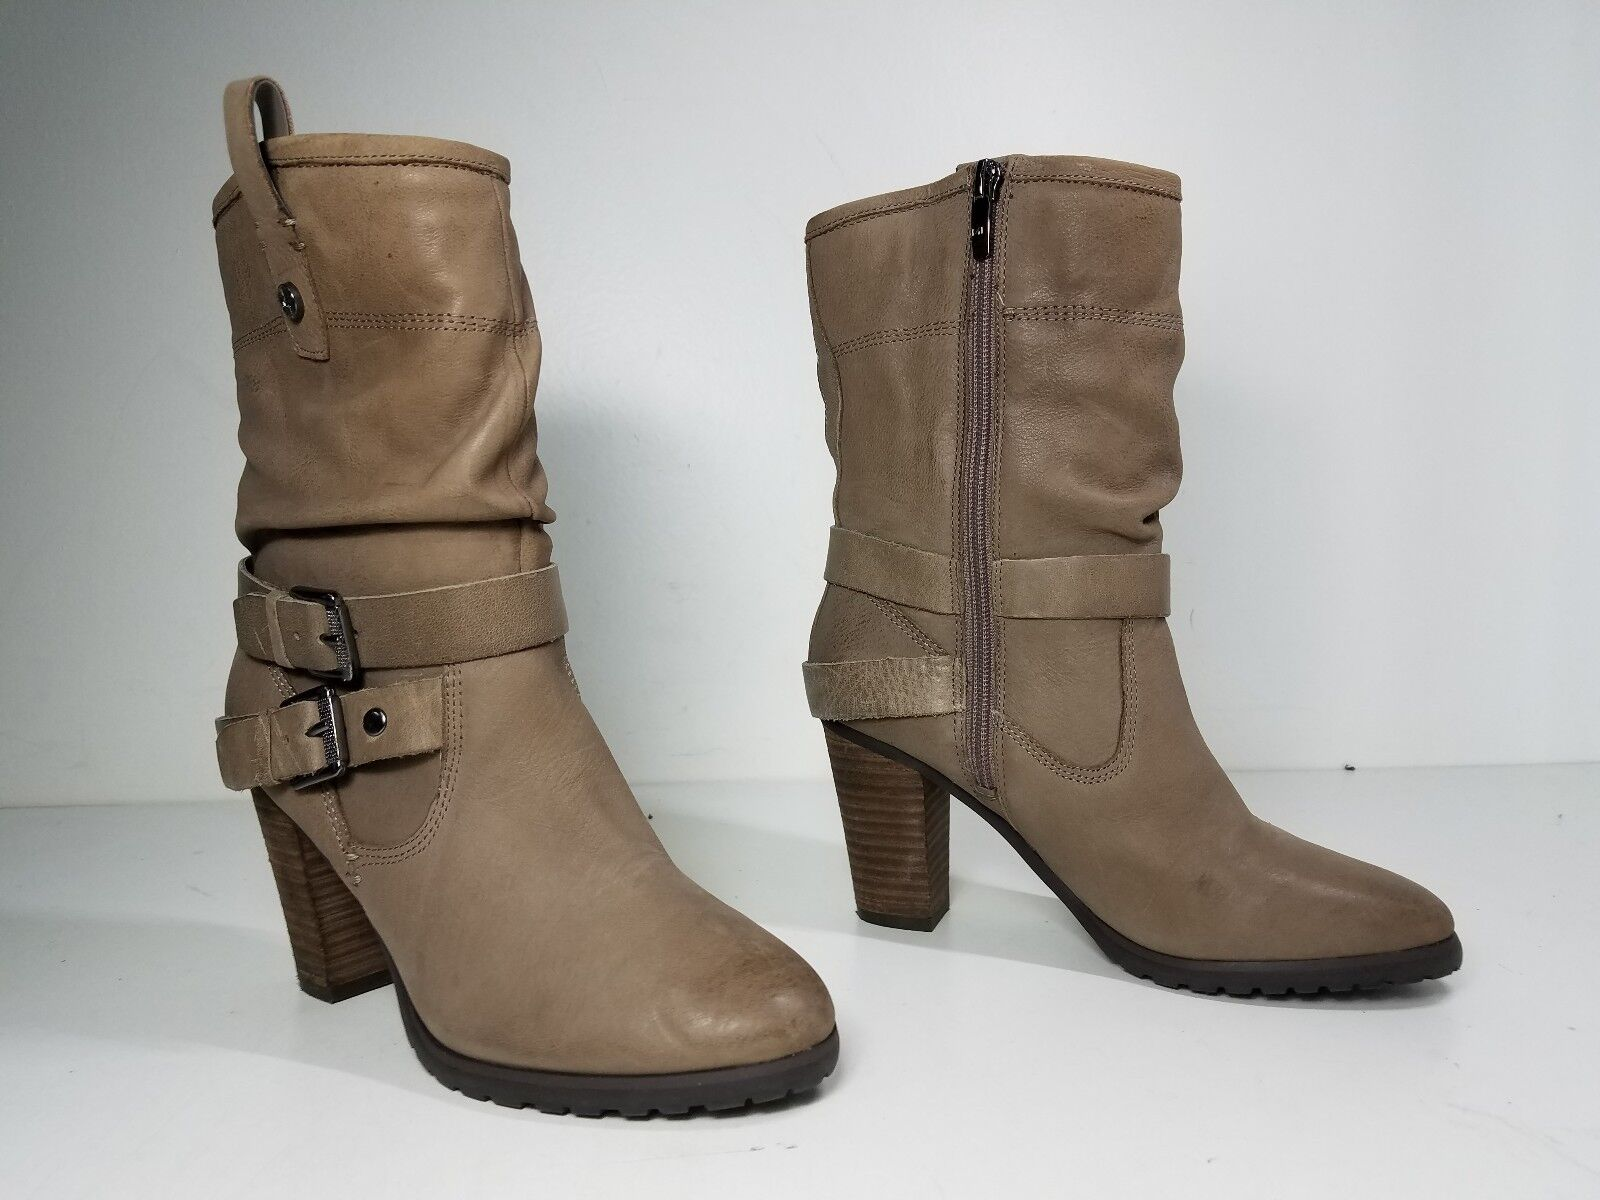 9 size 5.5 Marc Fisher Famous Natural Leather Heels Mid Calf Womens Boots